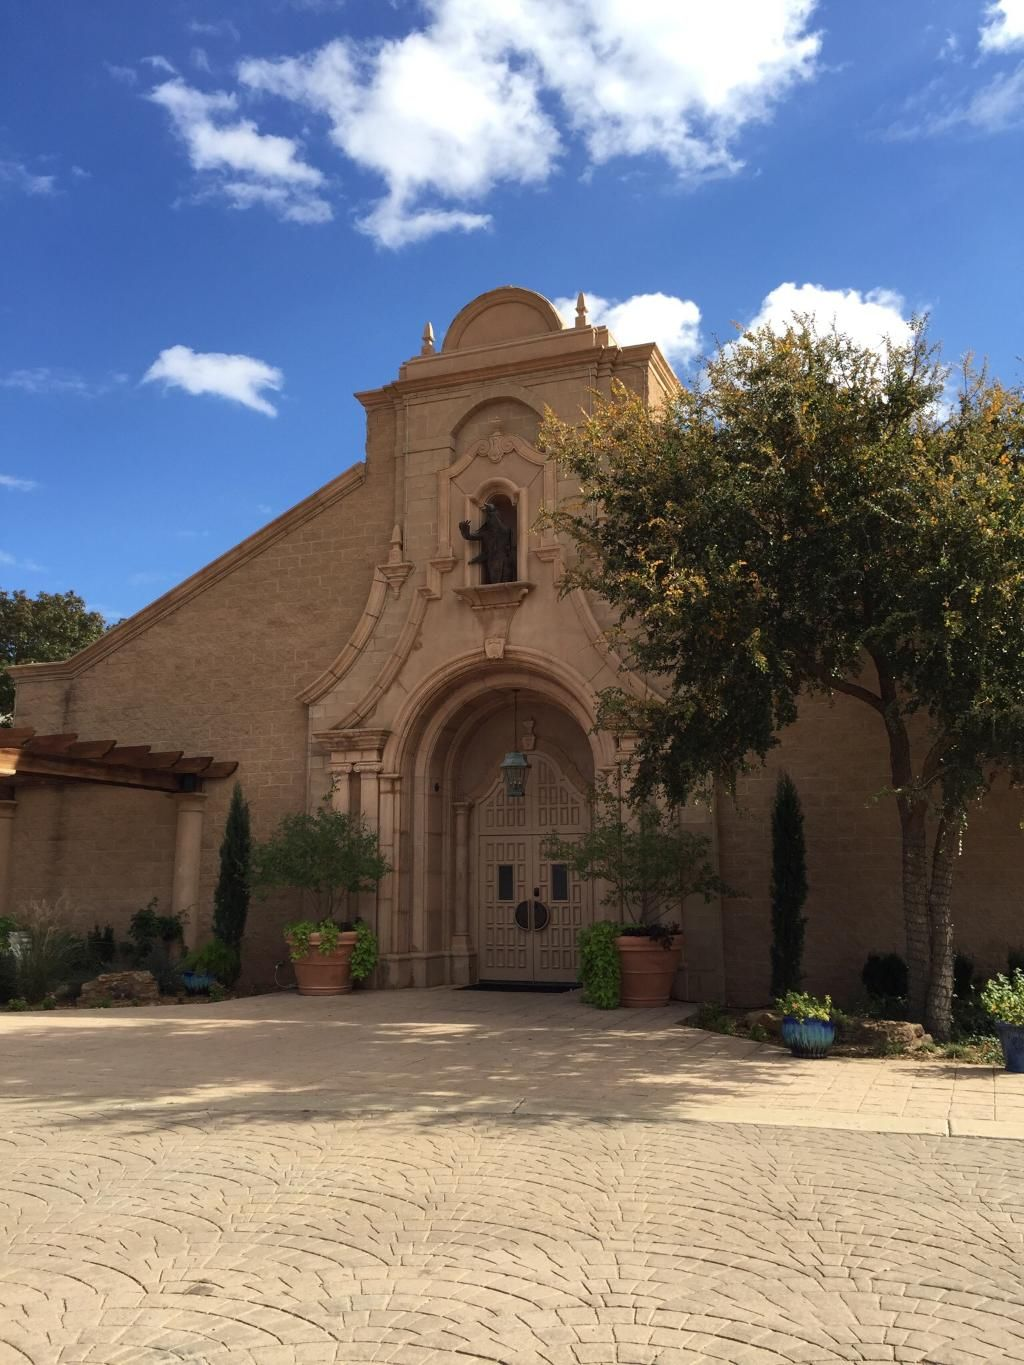 CapRock Winery (Lubbock) Updated 2019 All You Need to